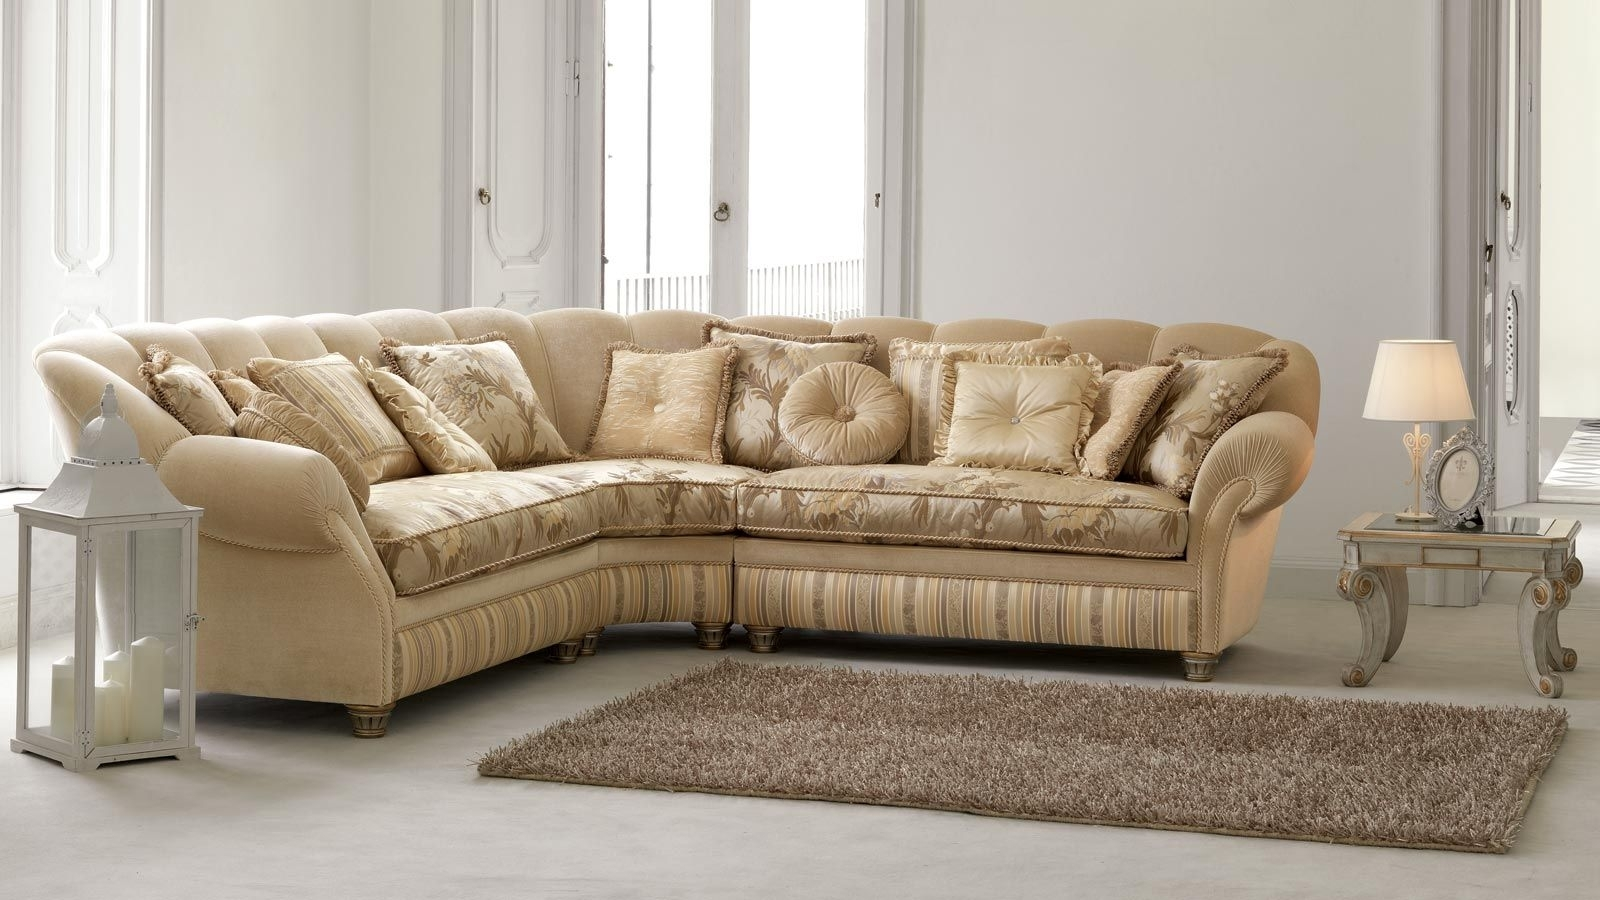 Furniture : Sectional Sofa 80 X 80 Corner Sofa Extension Sectional for Erie Pa Sectional Sofas (Image 1 of 10)